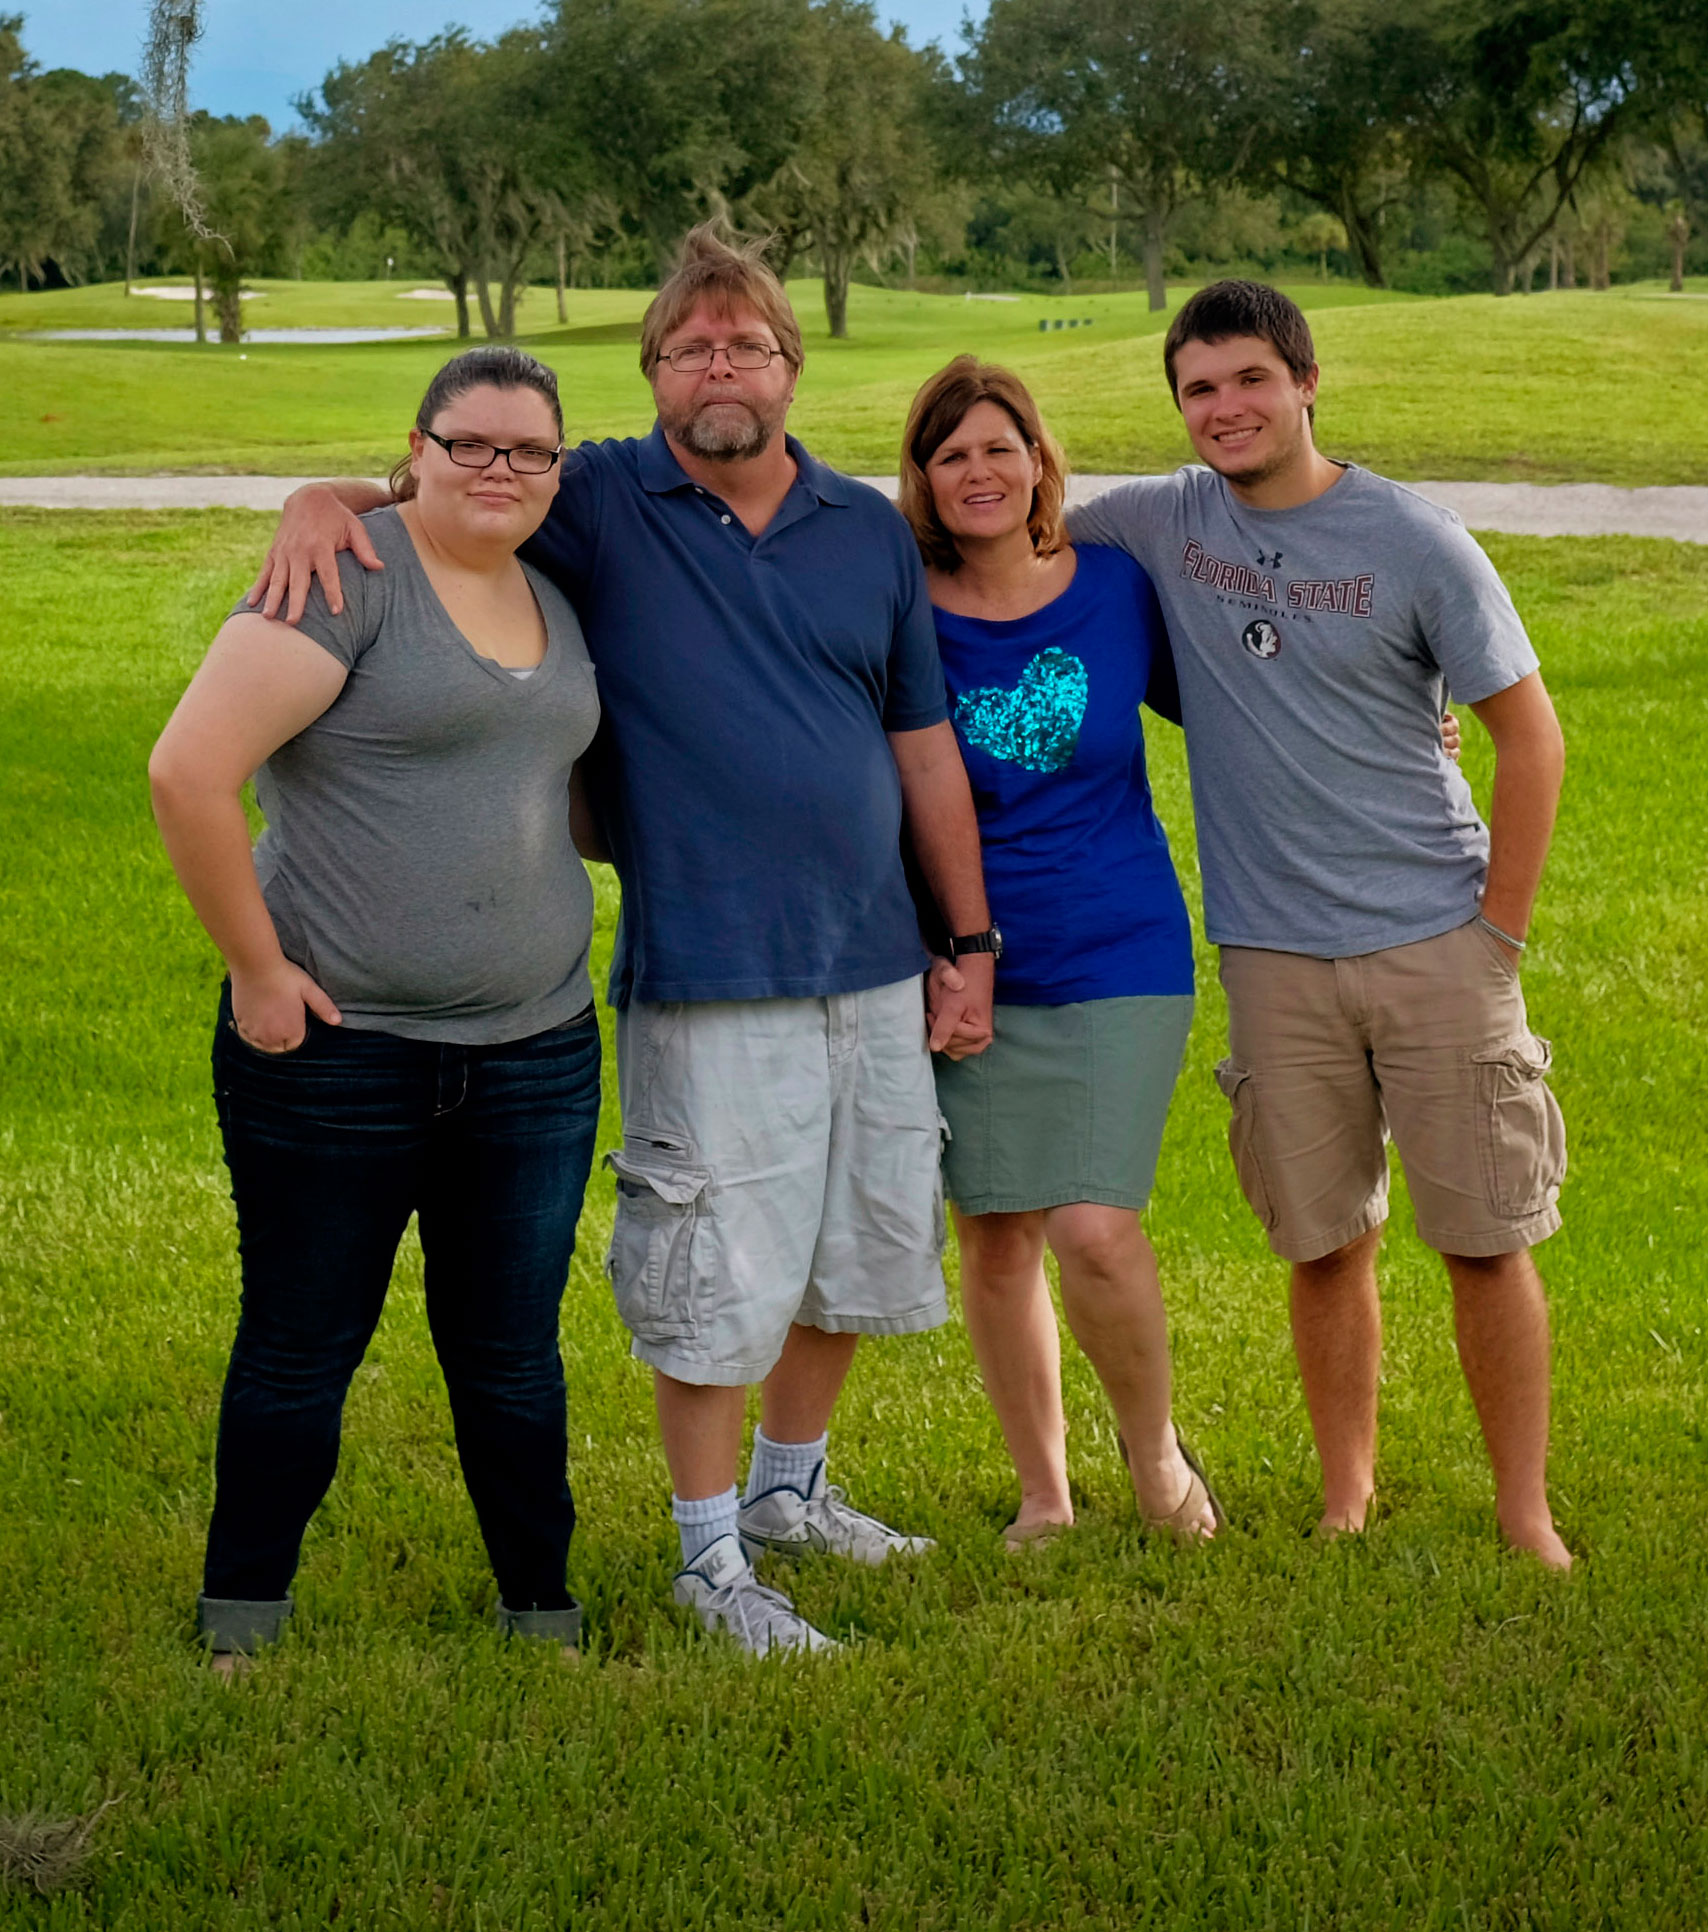 Bruce Moyer with his wife, Suzette, and daughter Callie, and son Dakota. Photograph by Edmund Fountain